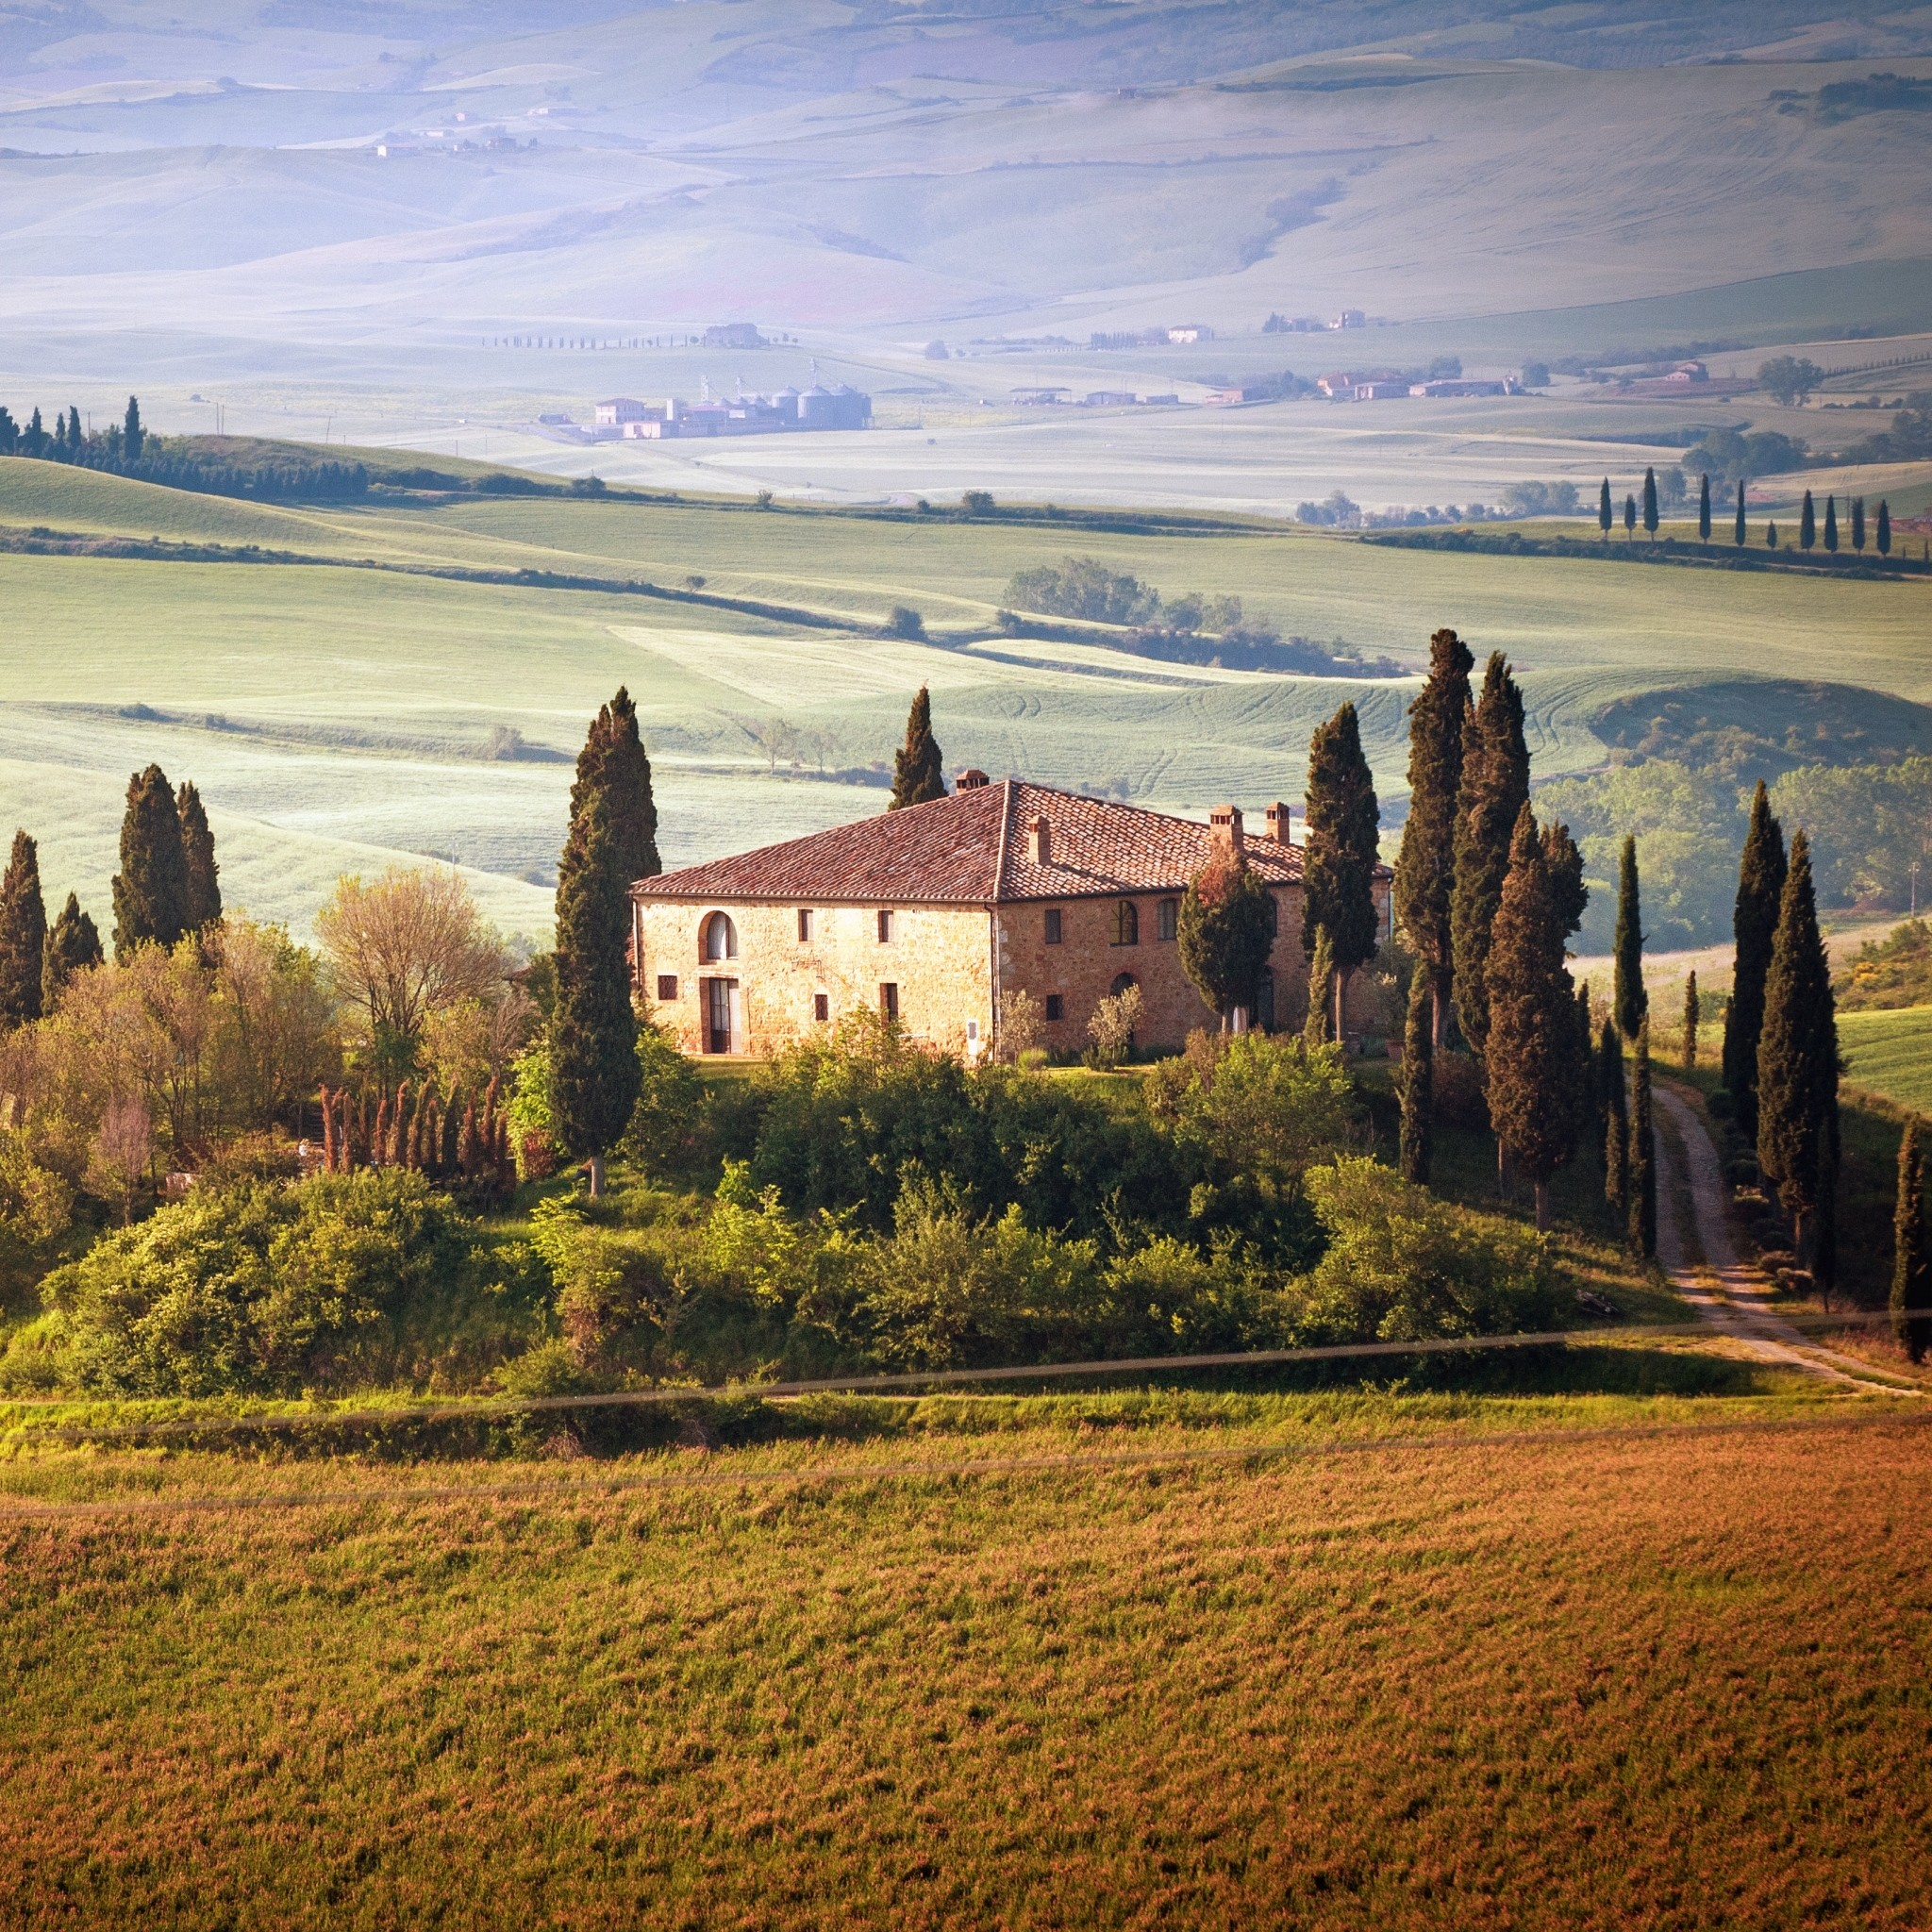 2048x2048 Preview wallpaper italy, tuscany, summer, countryside, landscape, nature,  trees,